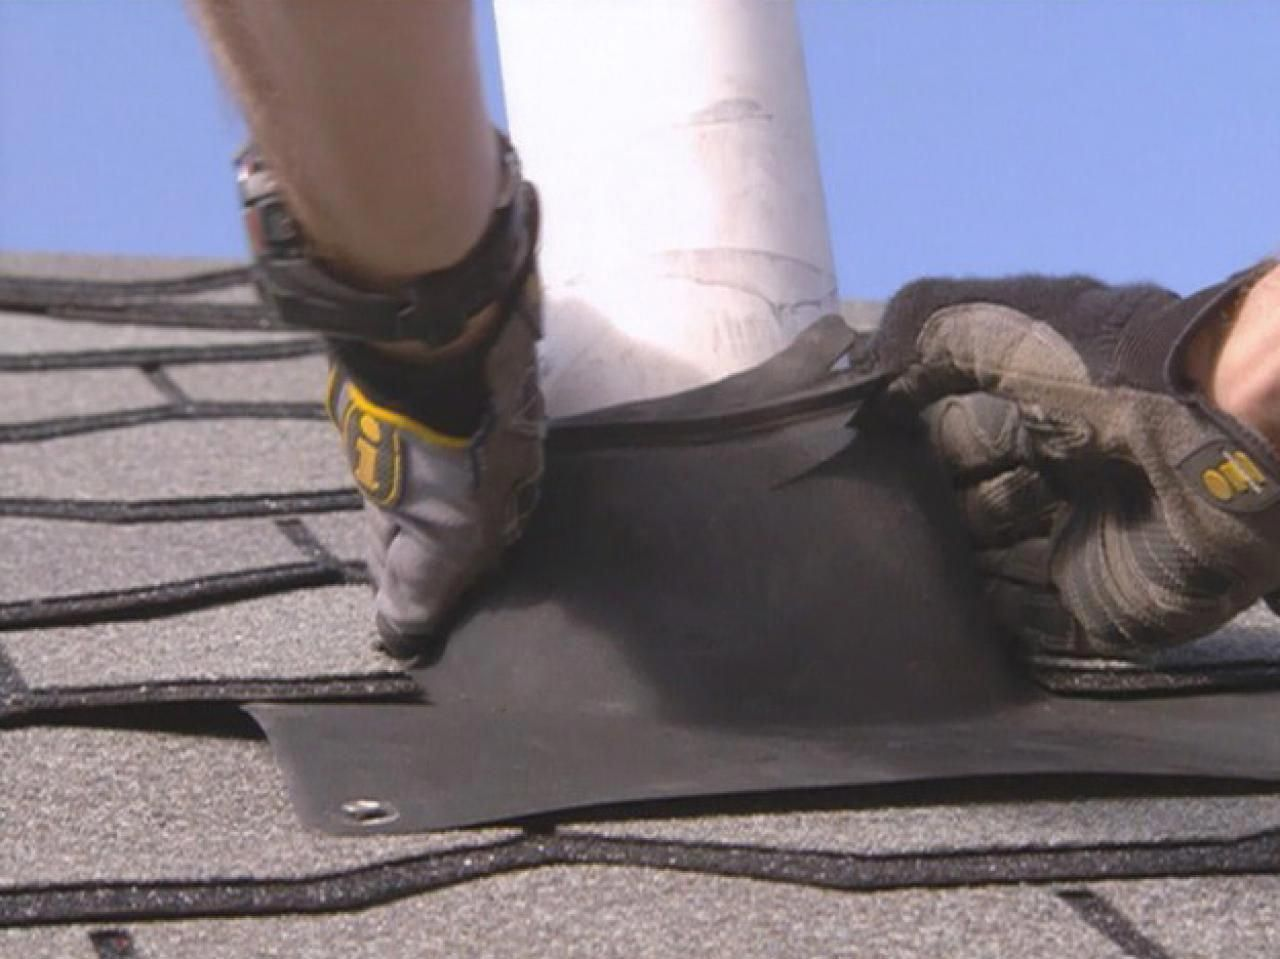 Diy Network Counts Down The Top 10 Tips For Safely Repairing A Leaking Roof Houseroofingtips Roof Repair Roofing Cool Roof